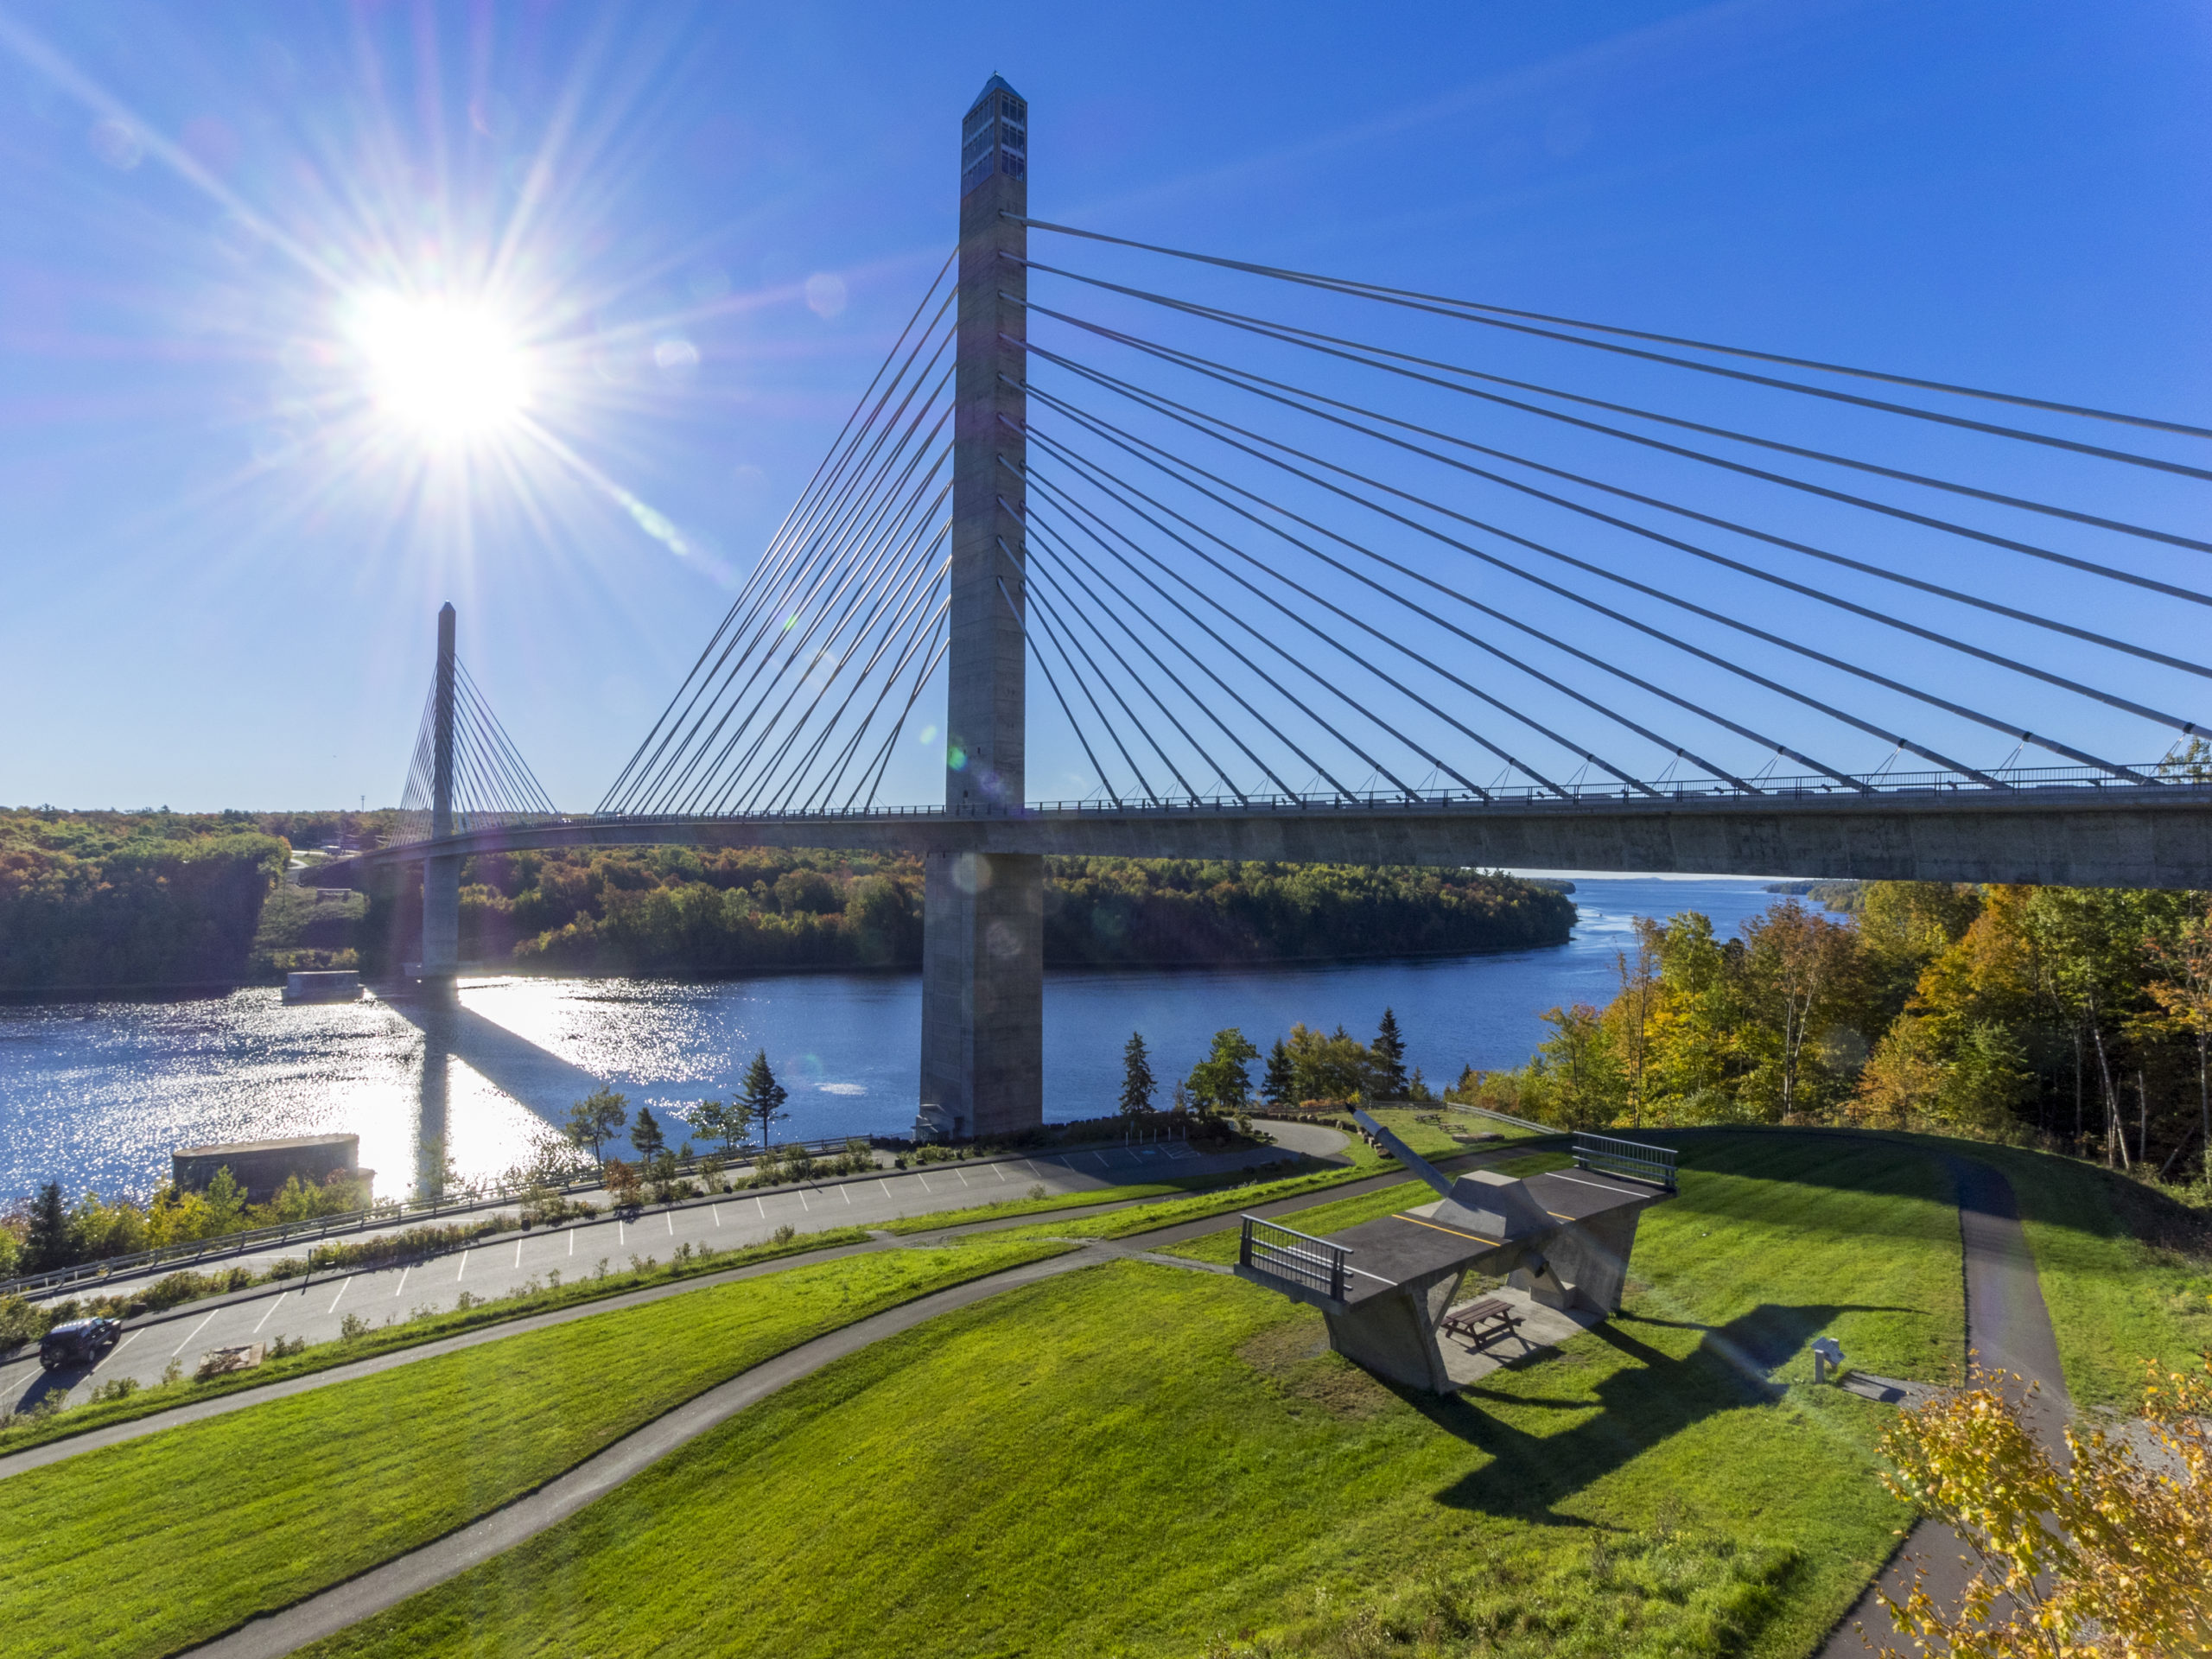 A view looking at Penobscot Narrows Bridge and Observatory in the State of Maine, USA.